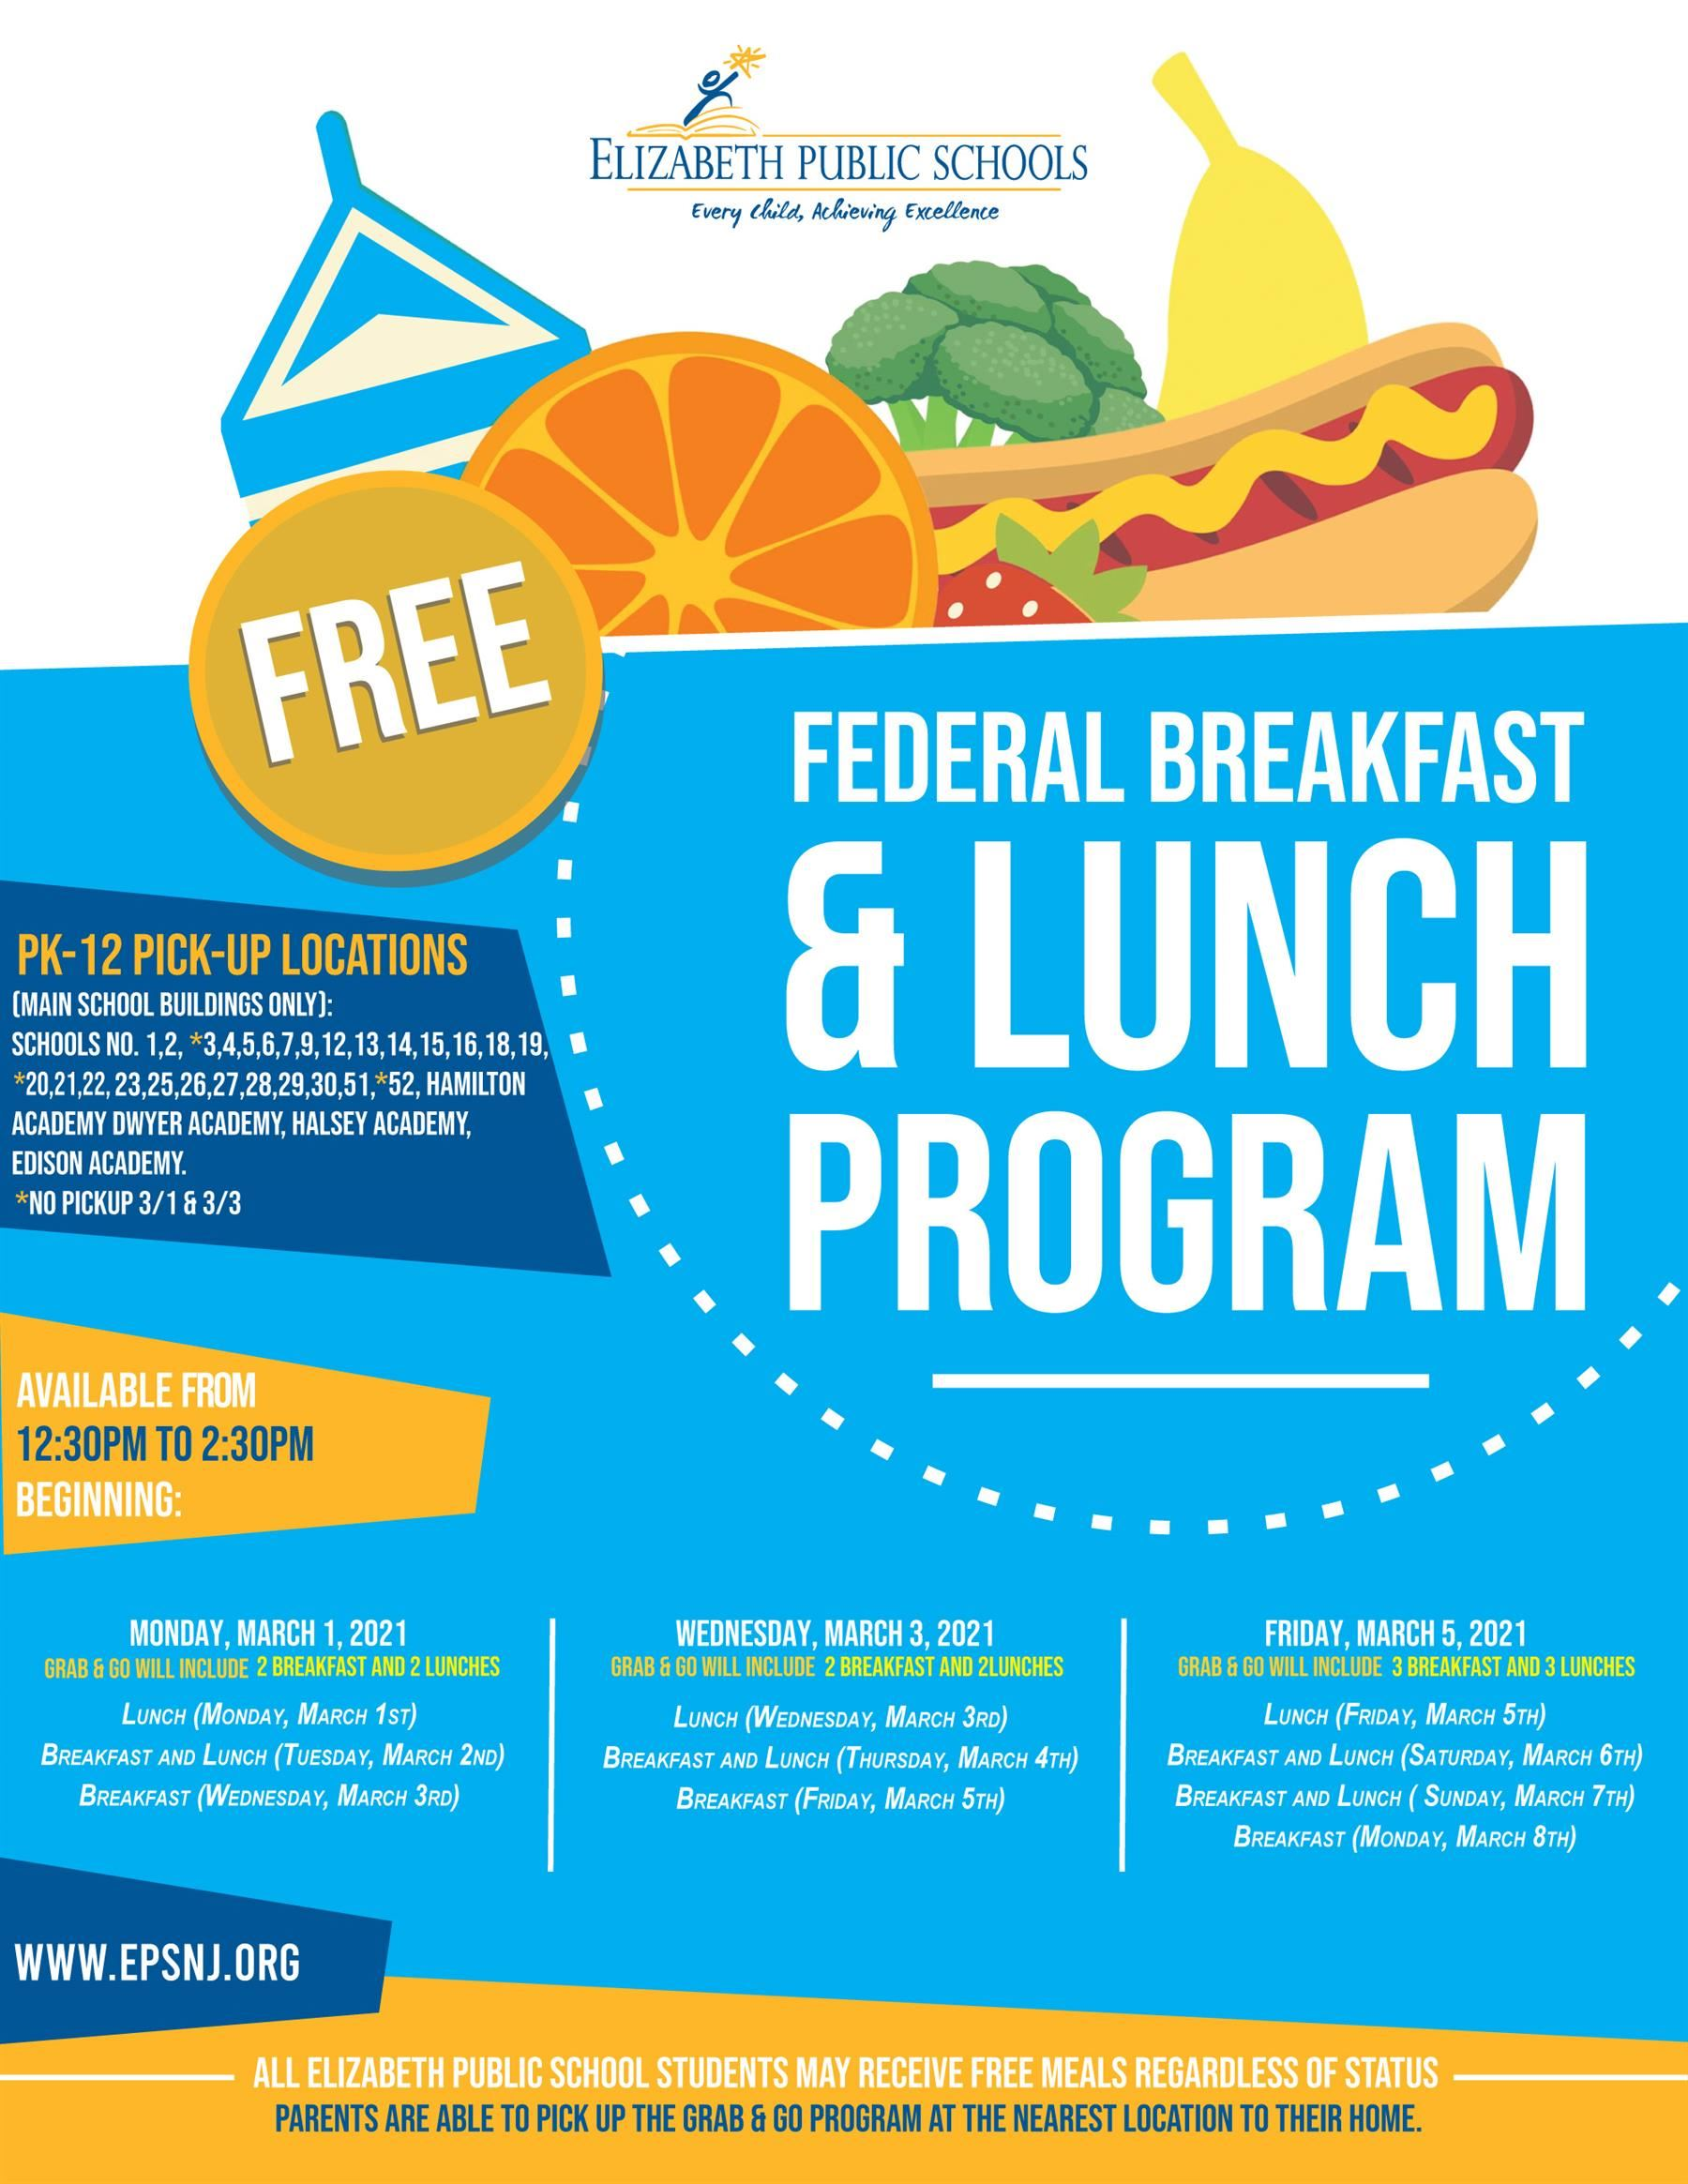 Lunch and Breakfast Program